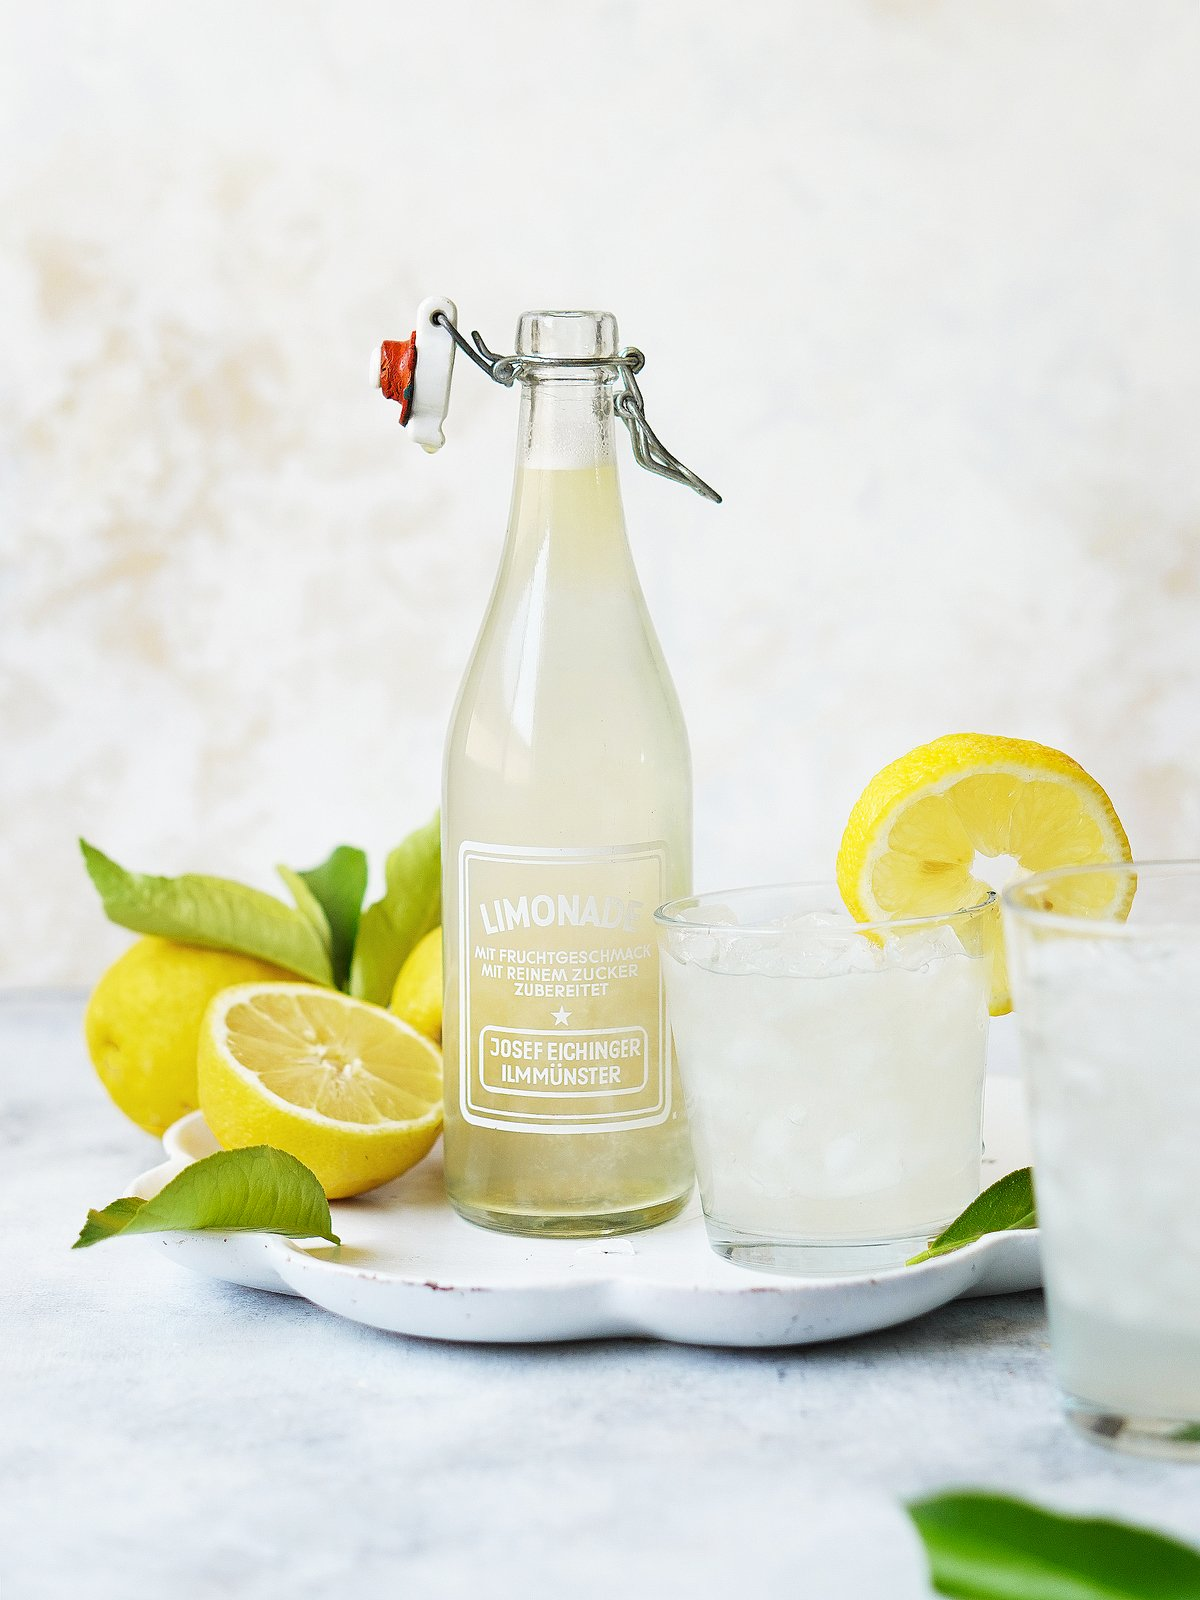 A white tray with a vintage bottle that says limonade